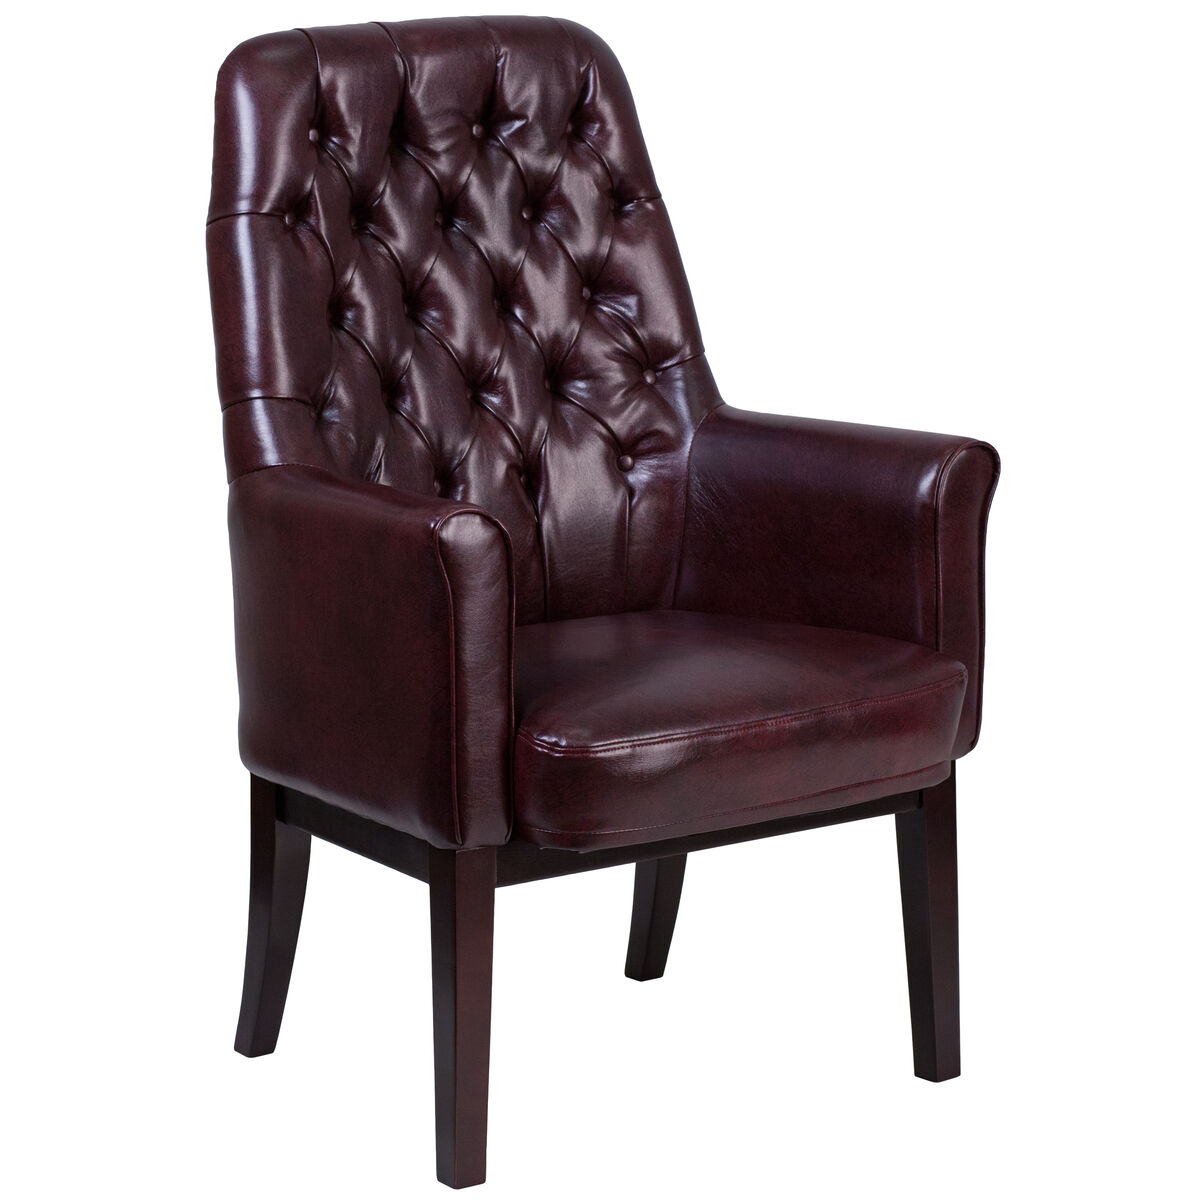 Patio Furniture Southern New Jersey: High Back Traditional Tufted Burgundy Leather Side